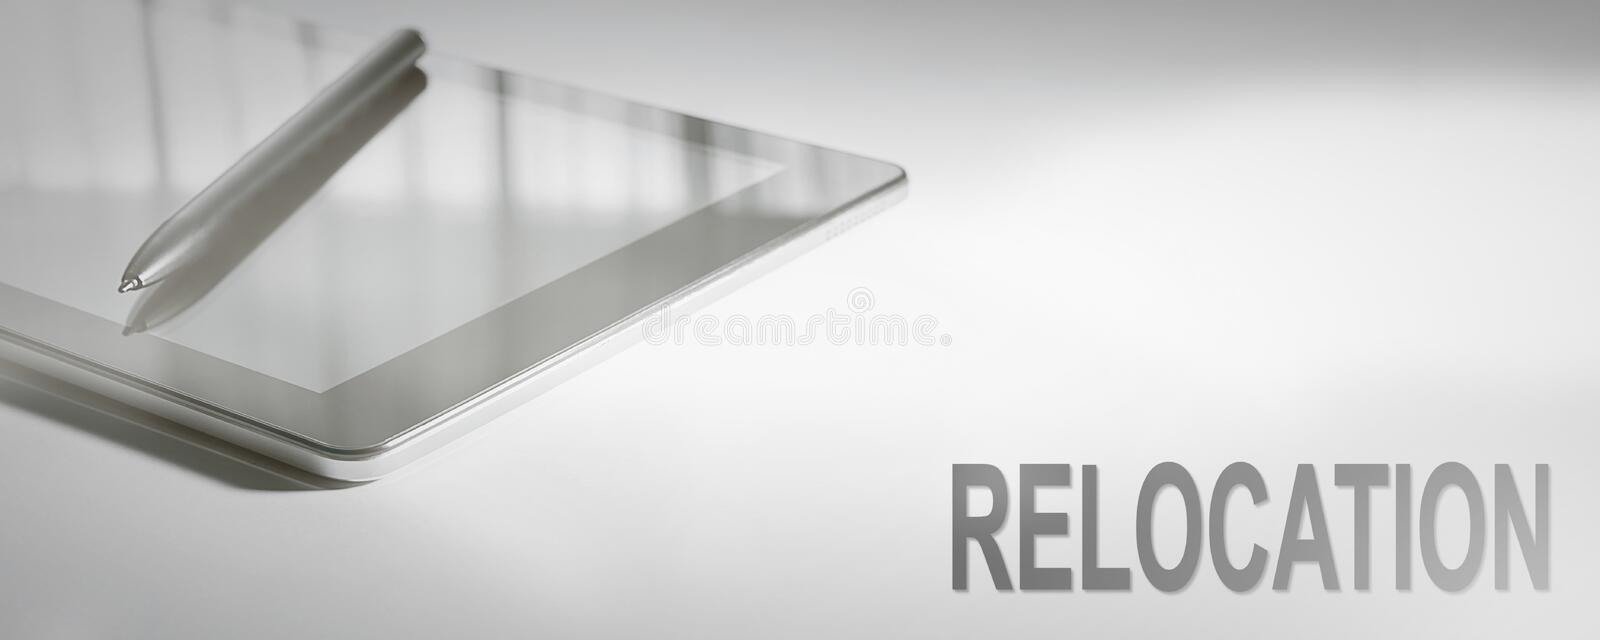 RELOCATION Business Concept Digital Technology. stock images